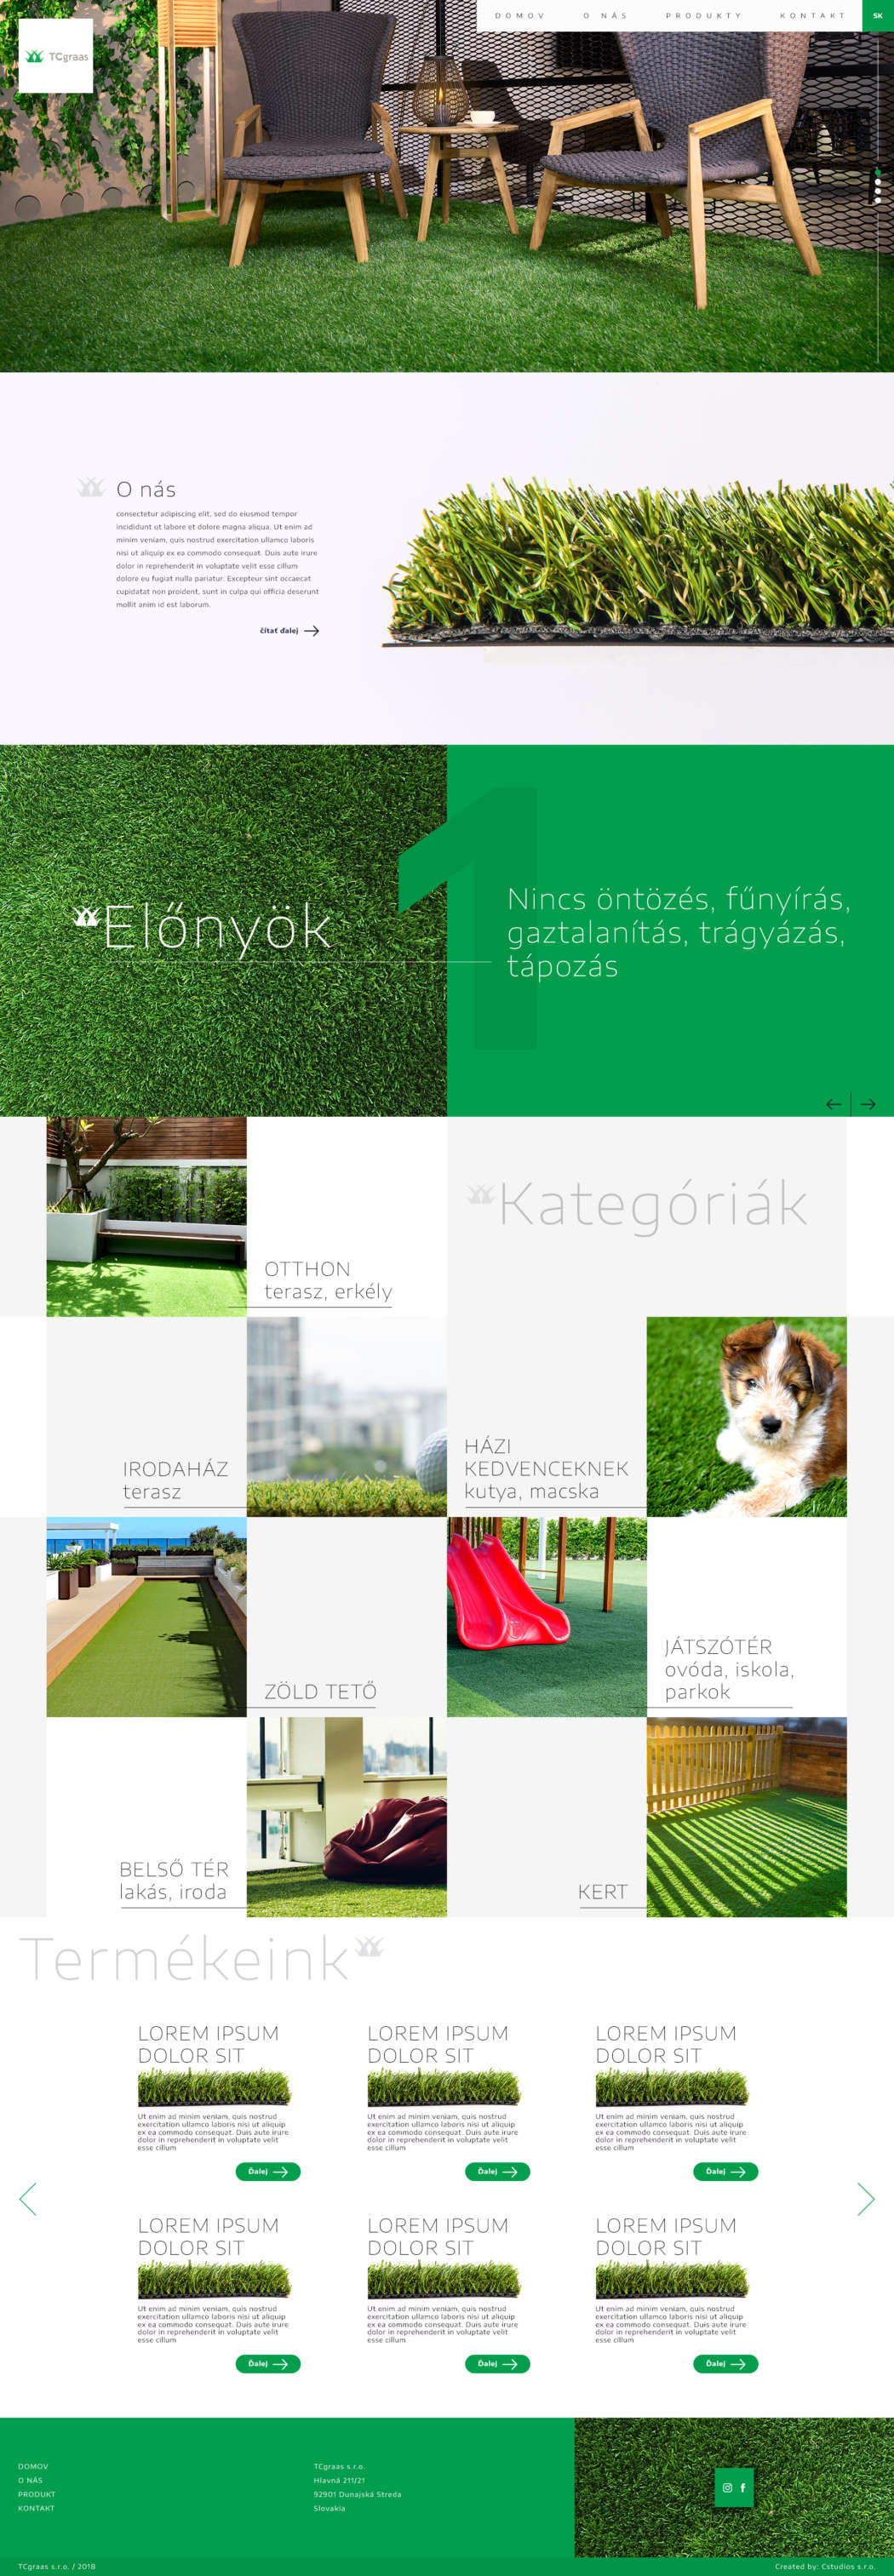 TC grassart - webdesign | Grafikerik